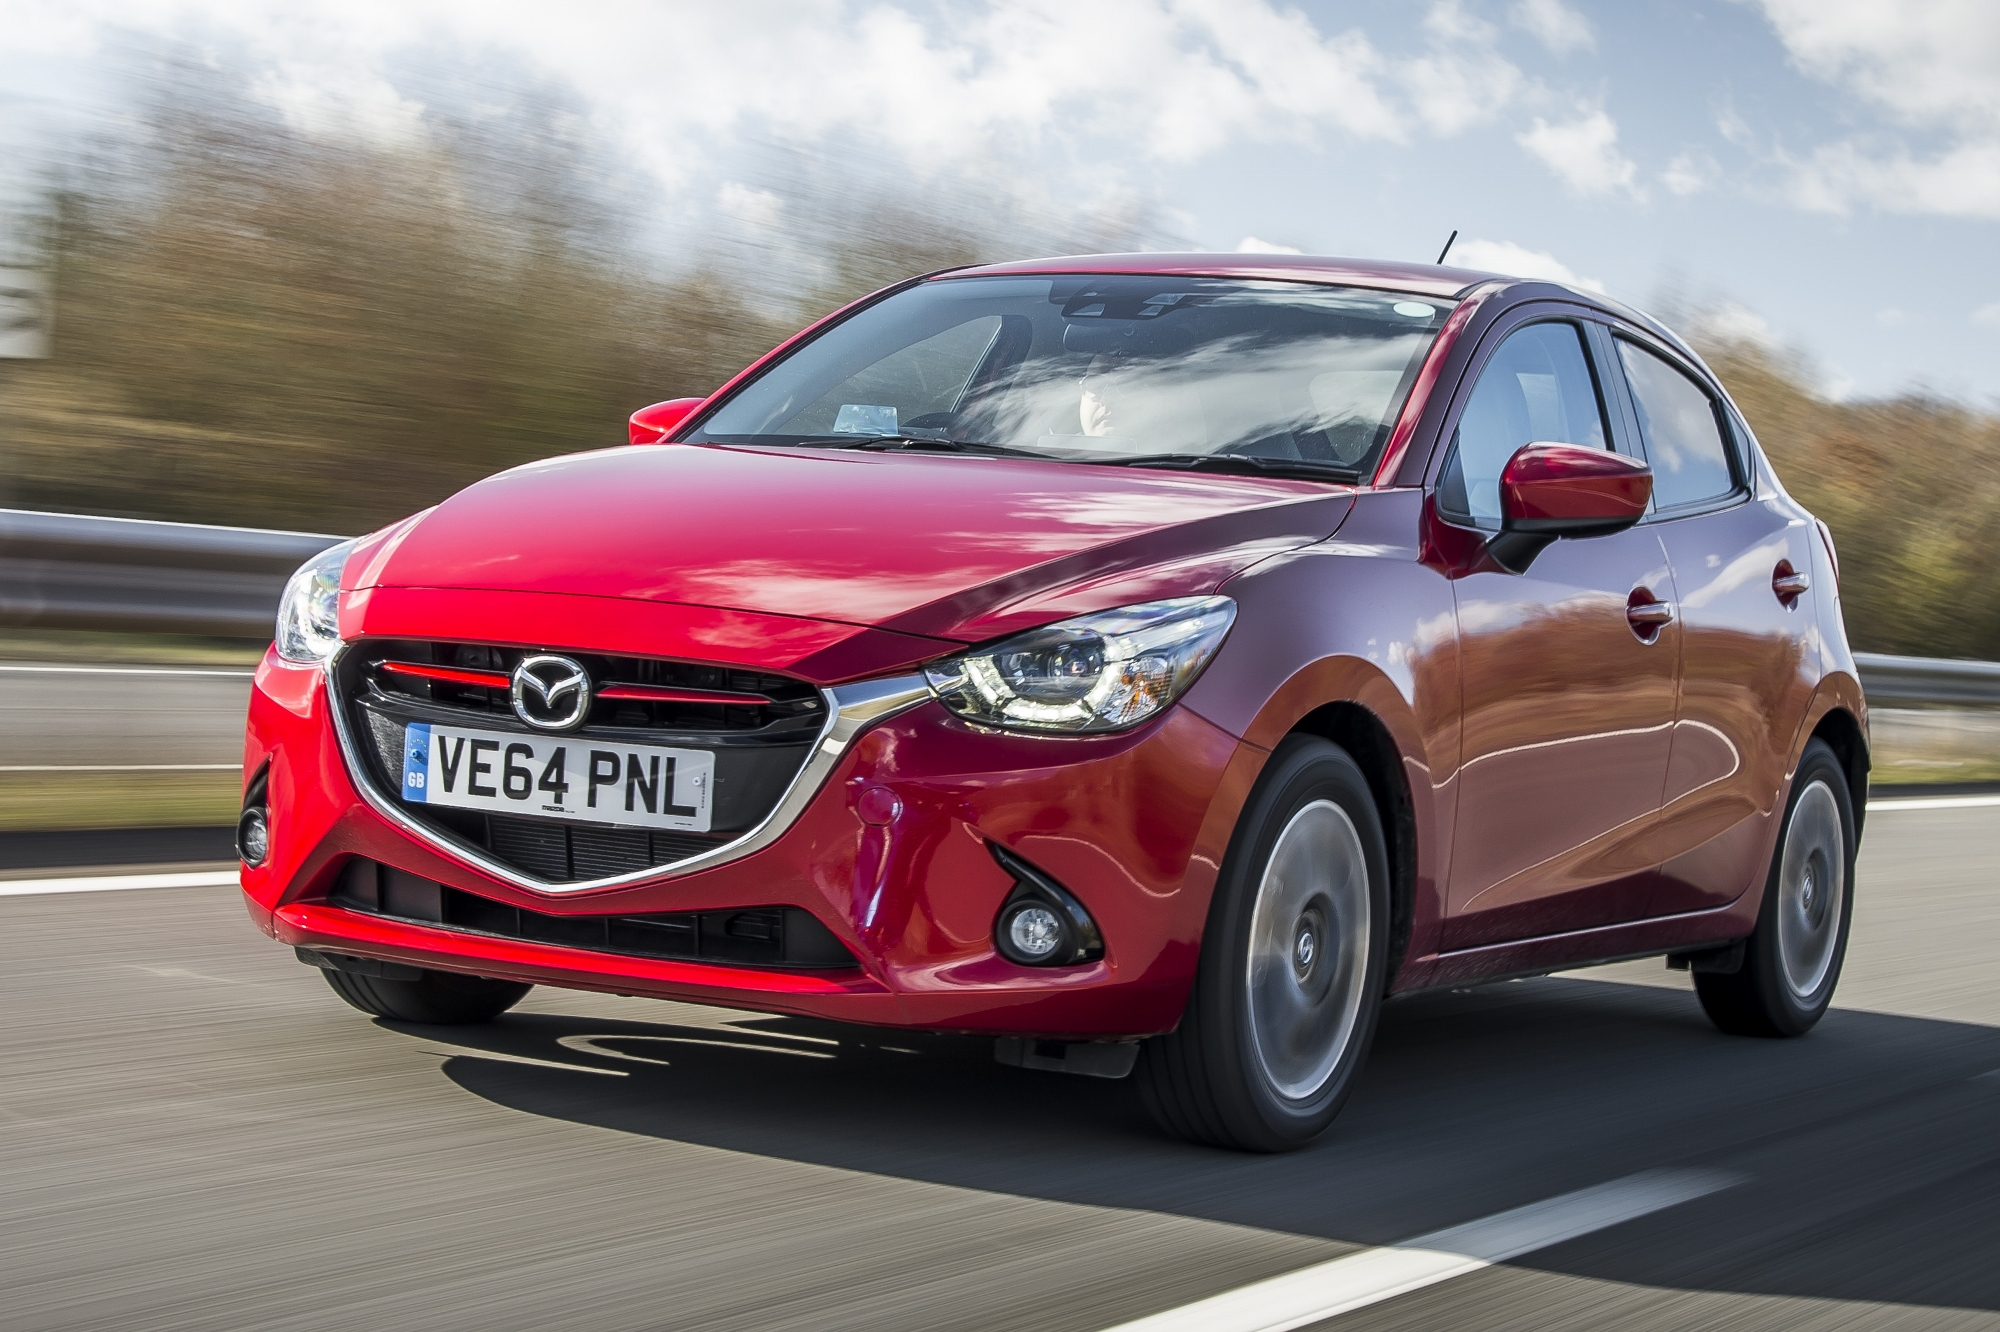 mazda2 reviews what the critics say of the stylish exciting and affordable small car inside. Black Bedroom Furniture Sets. Home Design Ideas